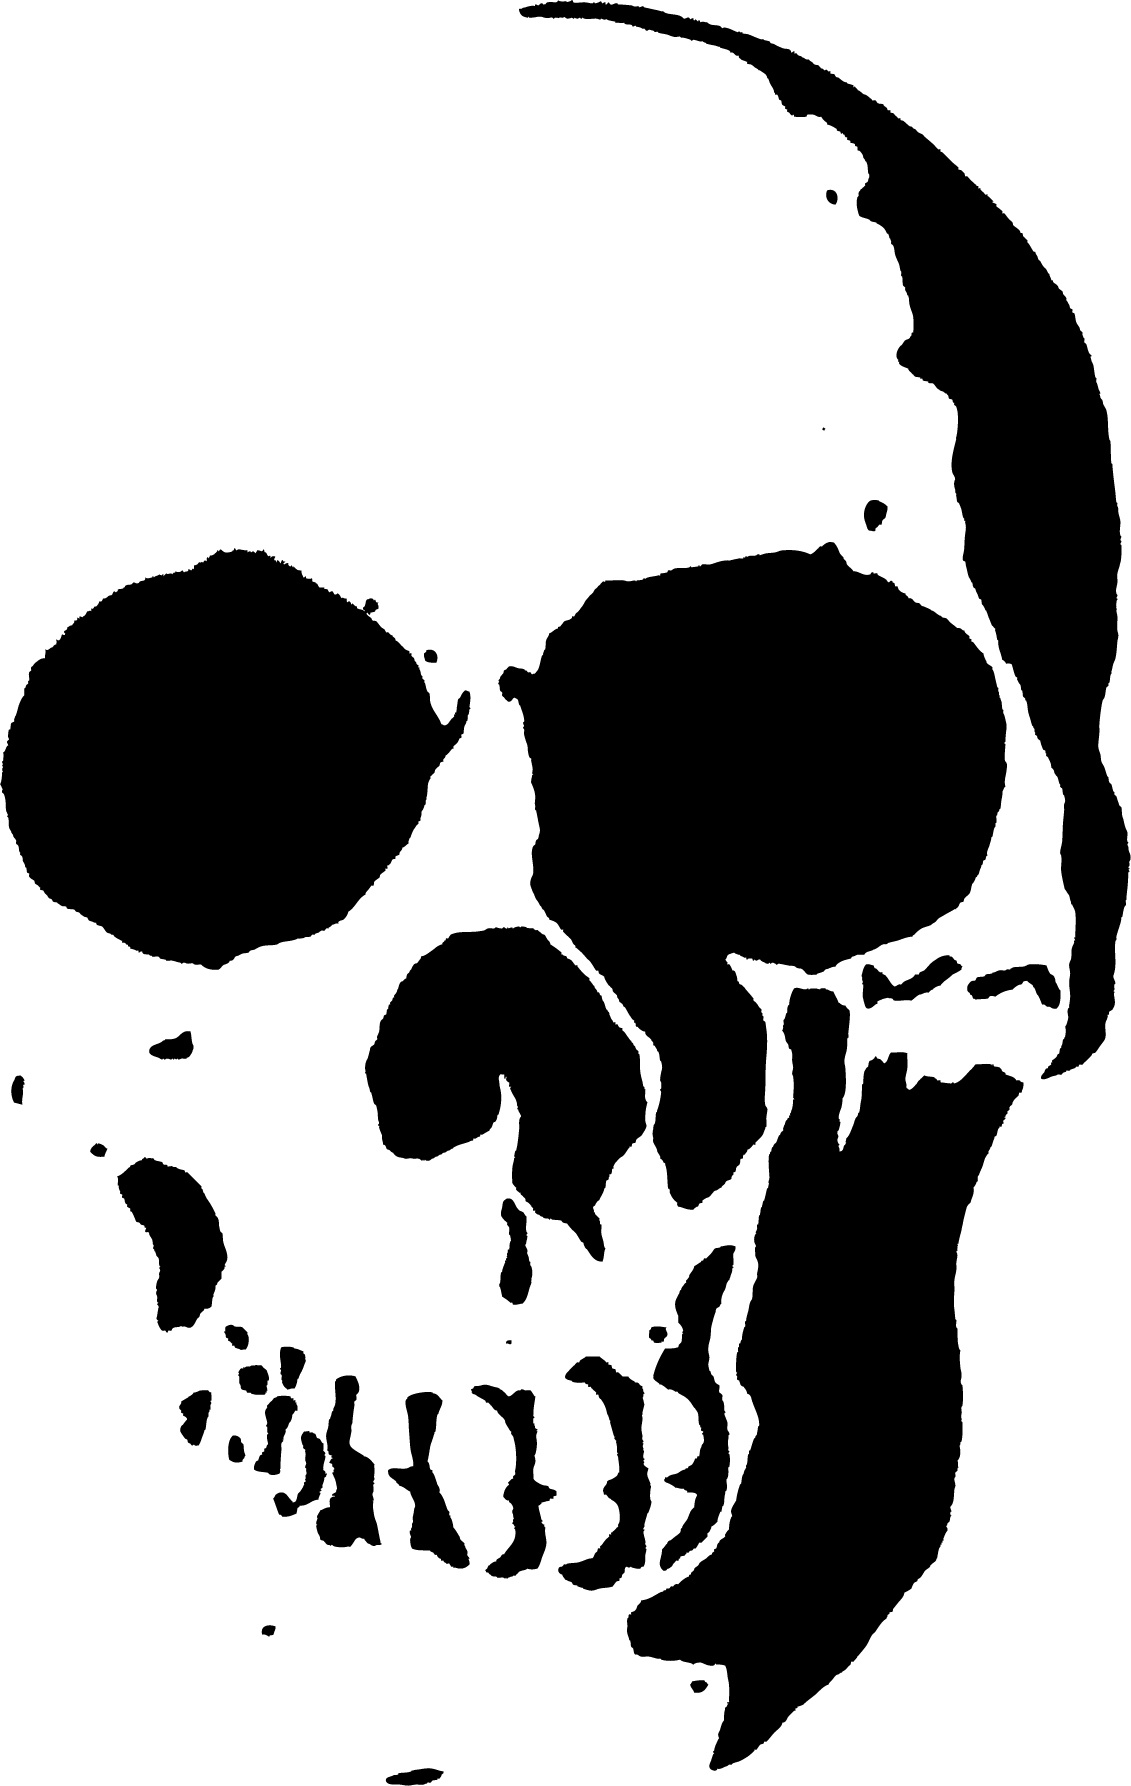 23 Free Skull Stencil Printable Templates | Guide Patterns - Free Printable Stencil Designs